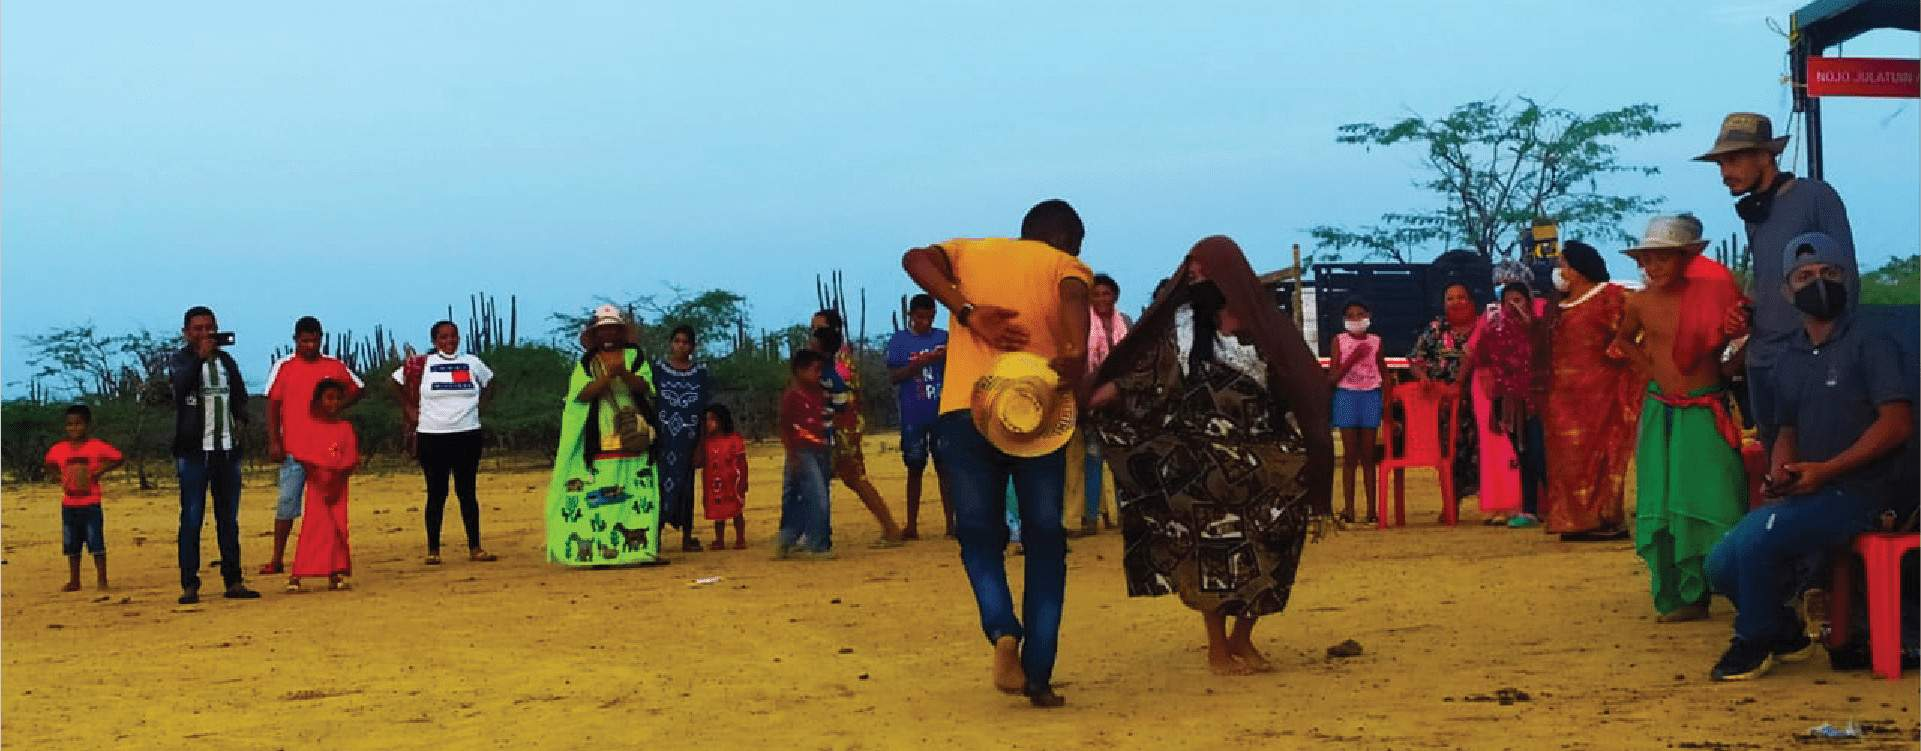 Wayúu Community in La Guajira, Colombia | WSP Project